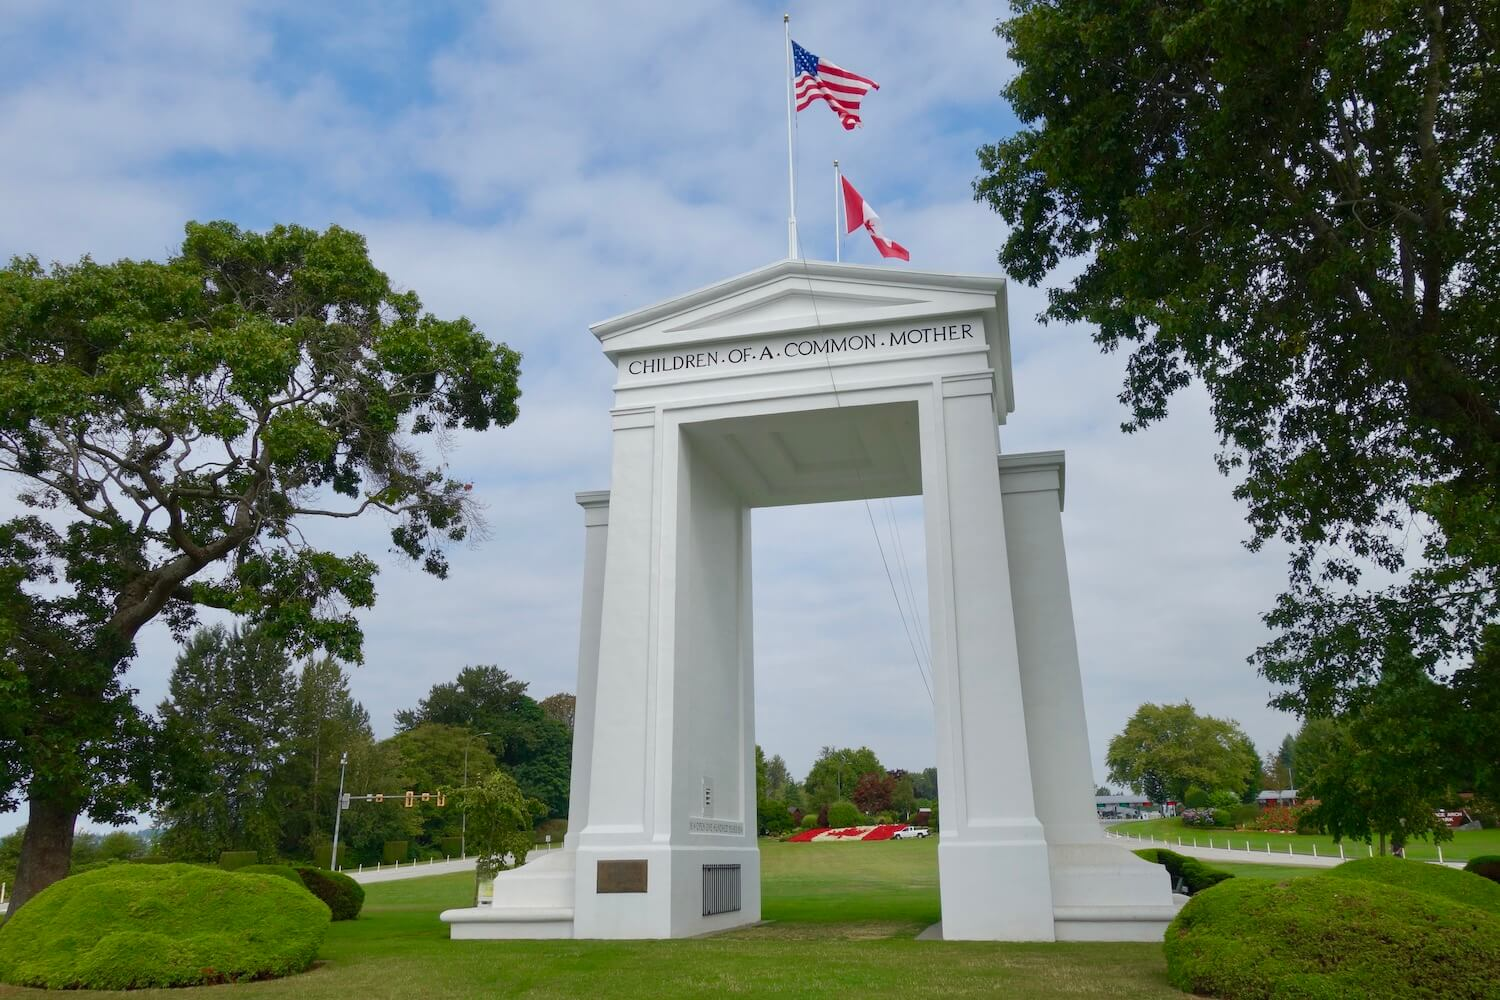 The giant Peace Arch at the United States Canada border is a milestone along the Seattle to Vancouver Drive. The giant white marble columns are located on a grassy green lawn with trees and gardens and both the US and Canadian flags fly proudly overhead.